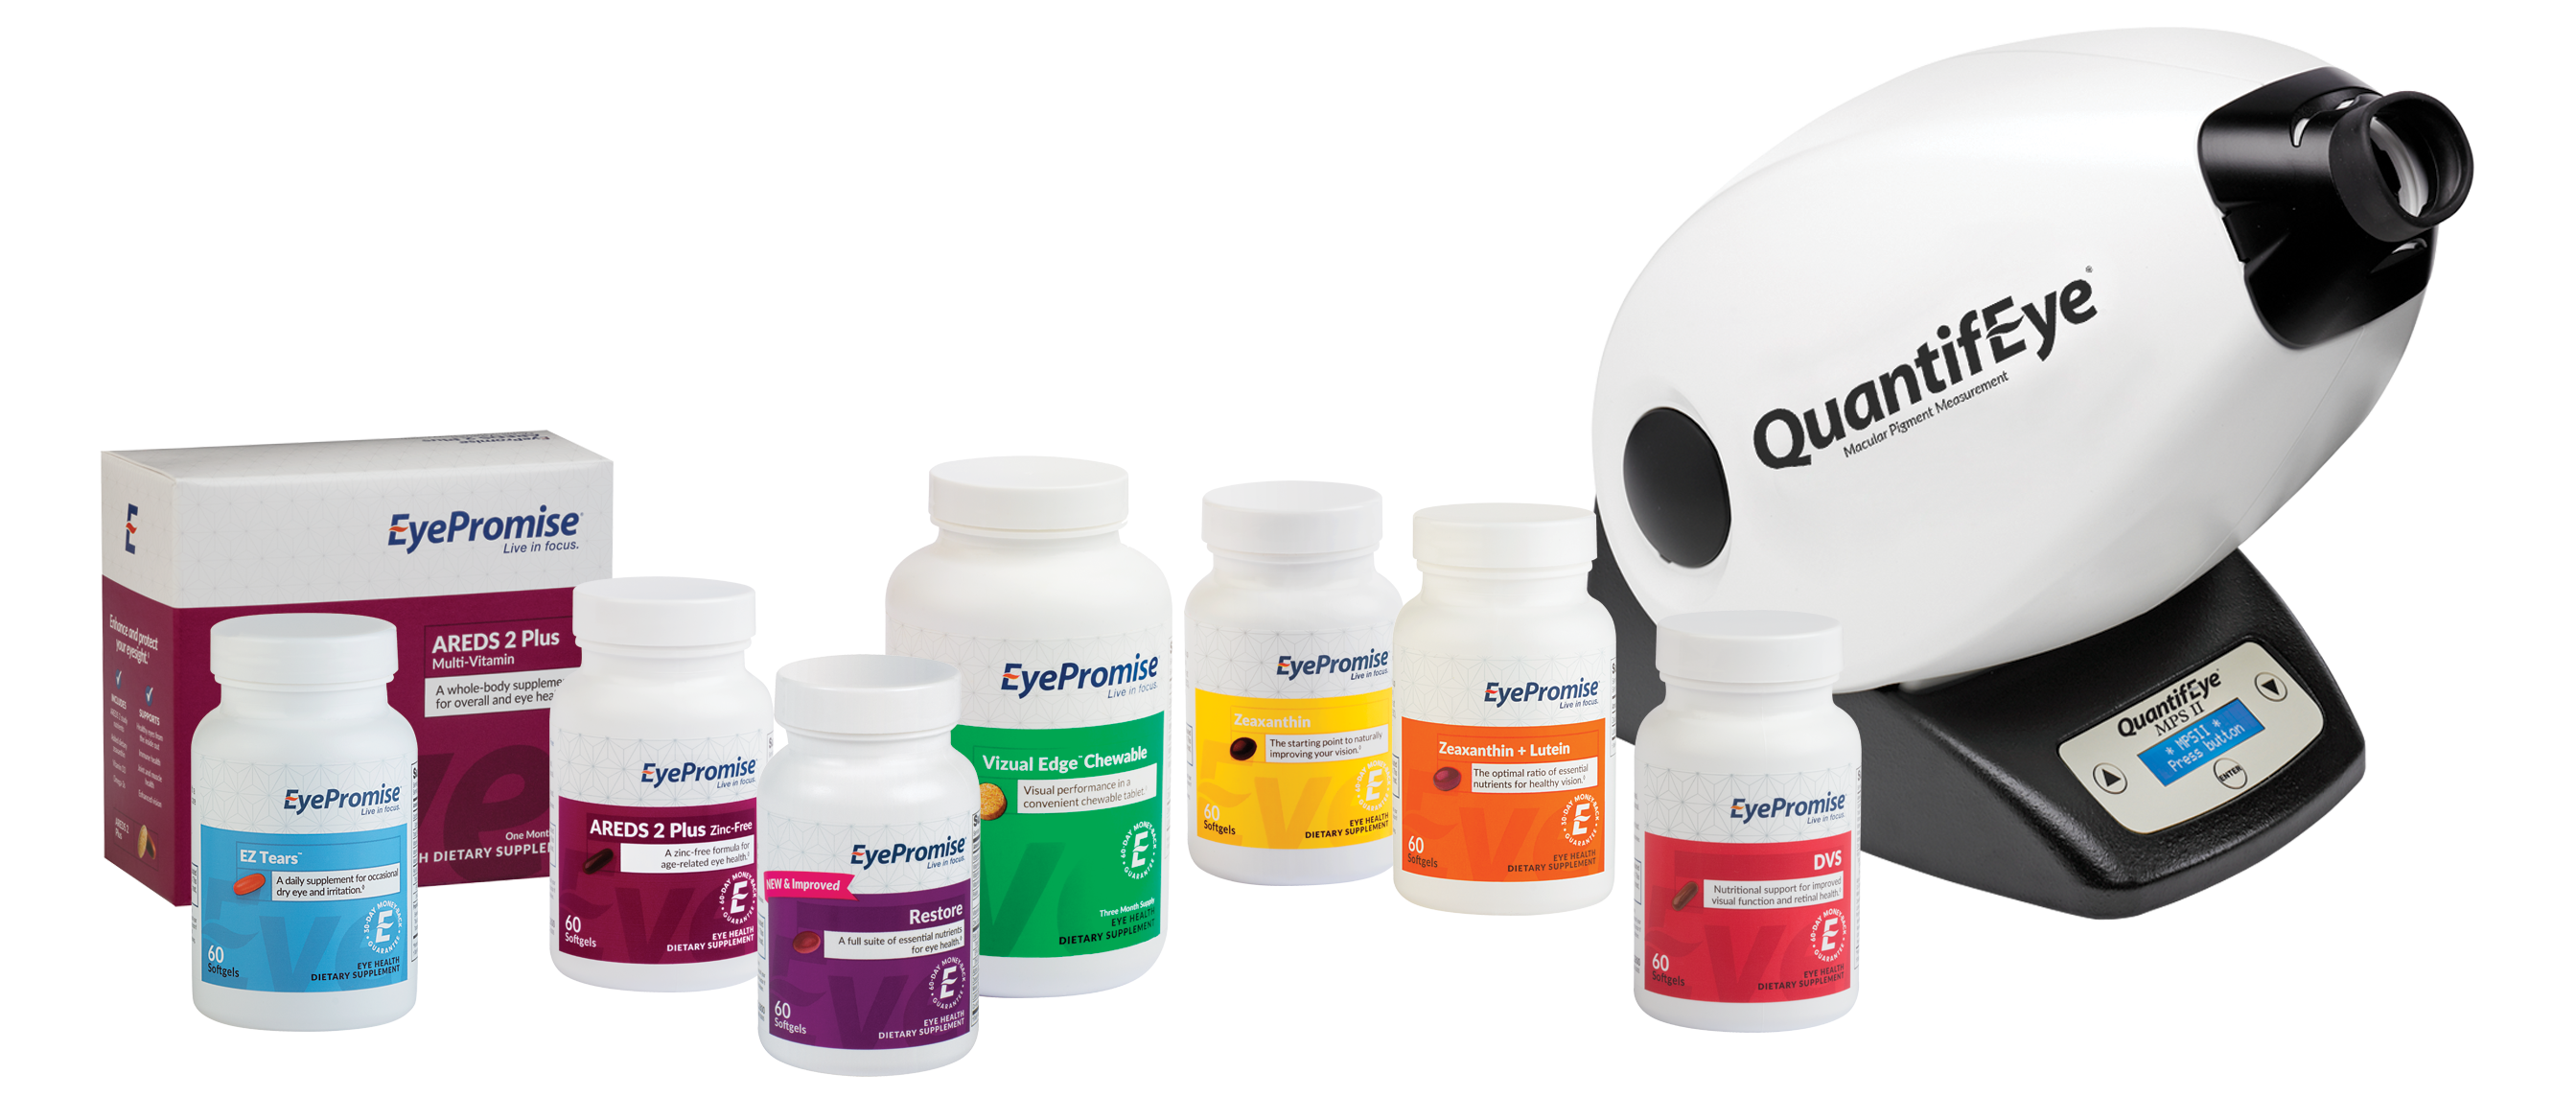 EyePromise Nutraceuticals and QuantifEye MPS II